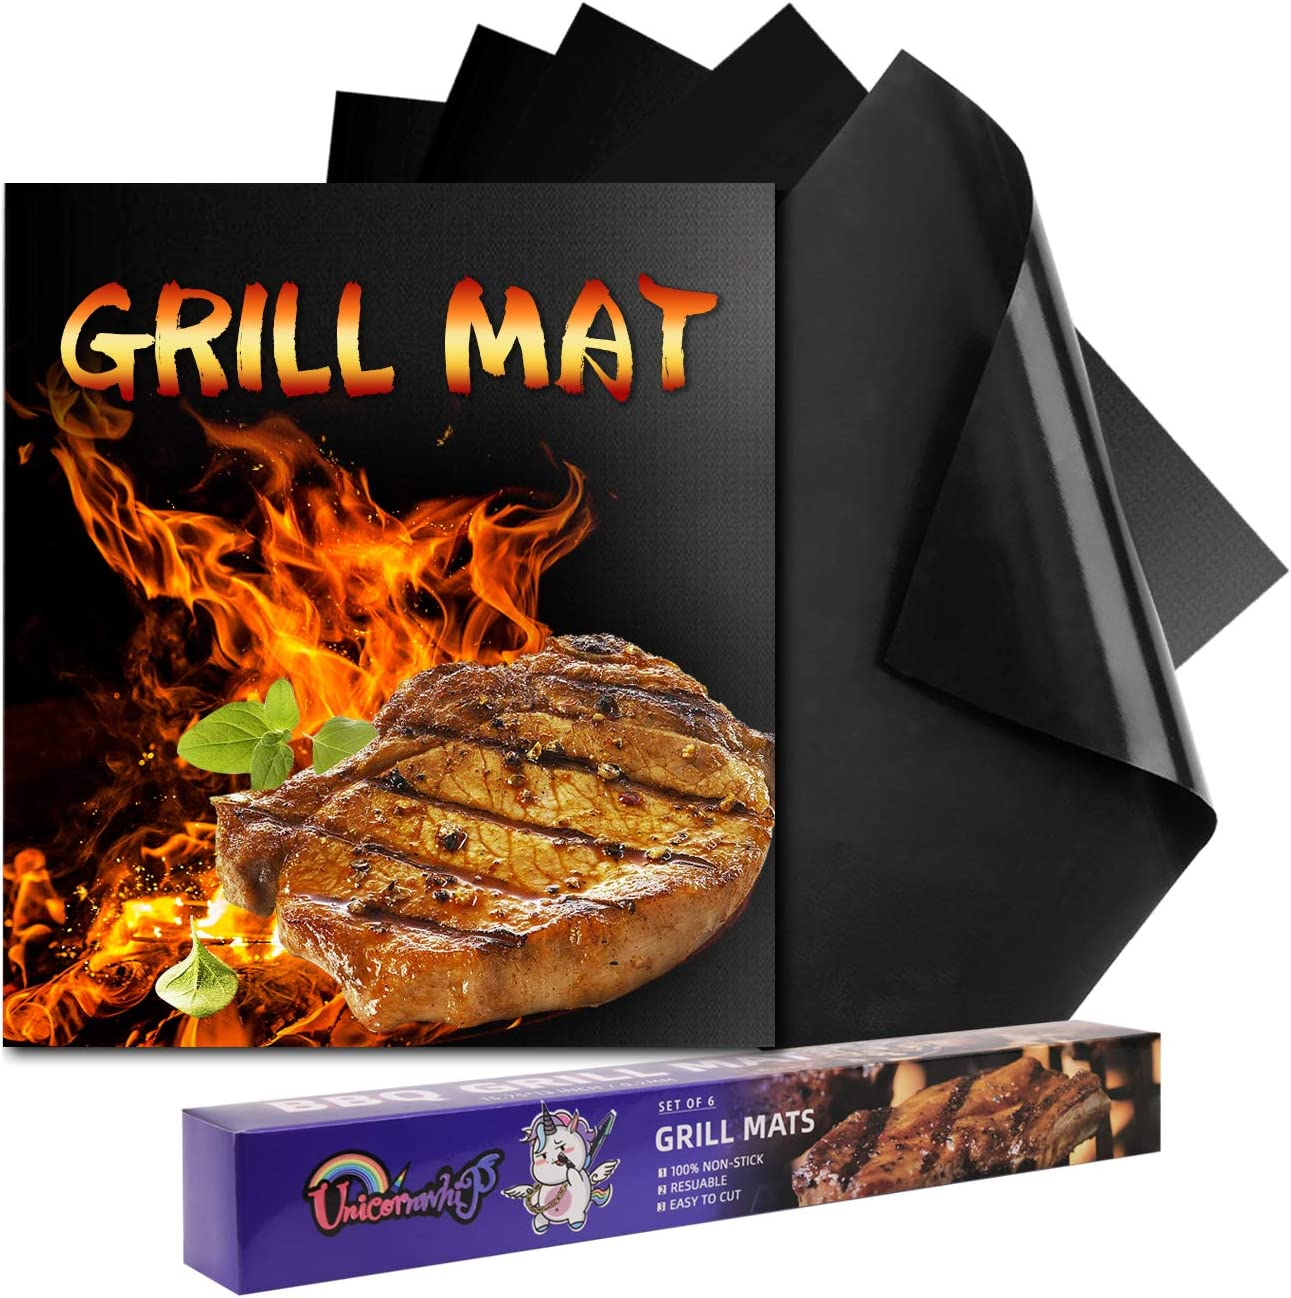 Unicornwhip Grill Mats for Outdoor Grill, Set of 6 Non Stick BBQ Grill Mat, Reusable Grilling Mat, Easy to Clean Grill Sheets, Works on Oven Charcoal Electric Stove, 15.75 x 13 Inch, Black